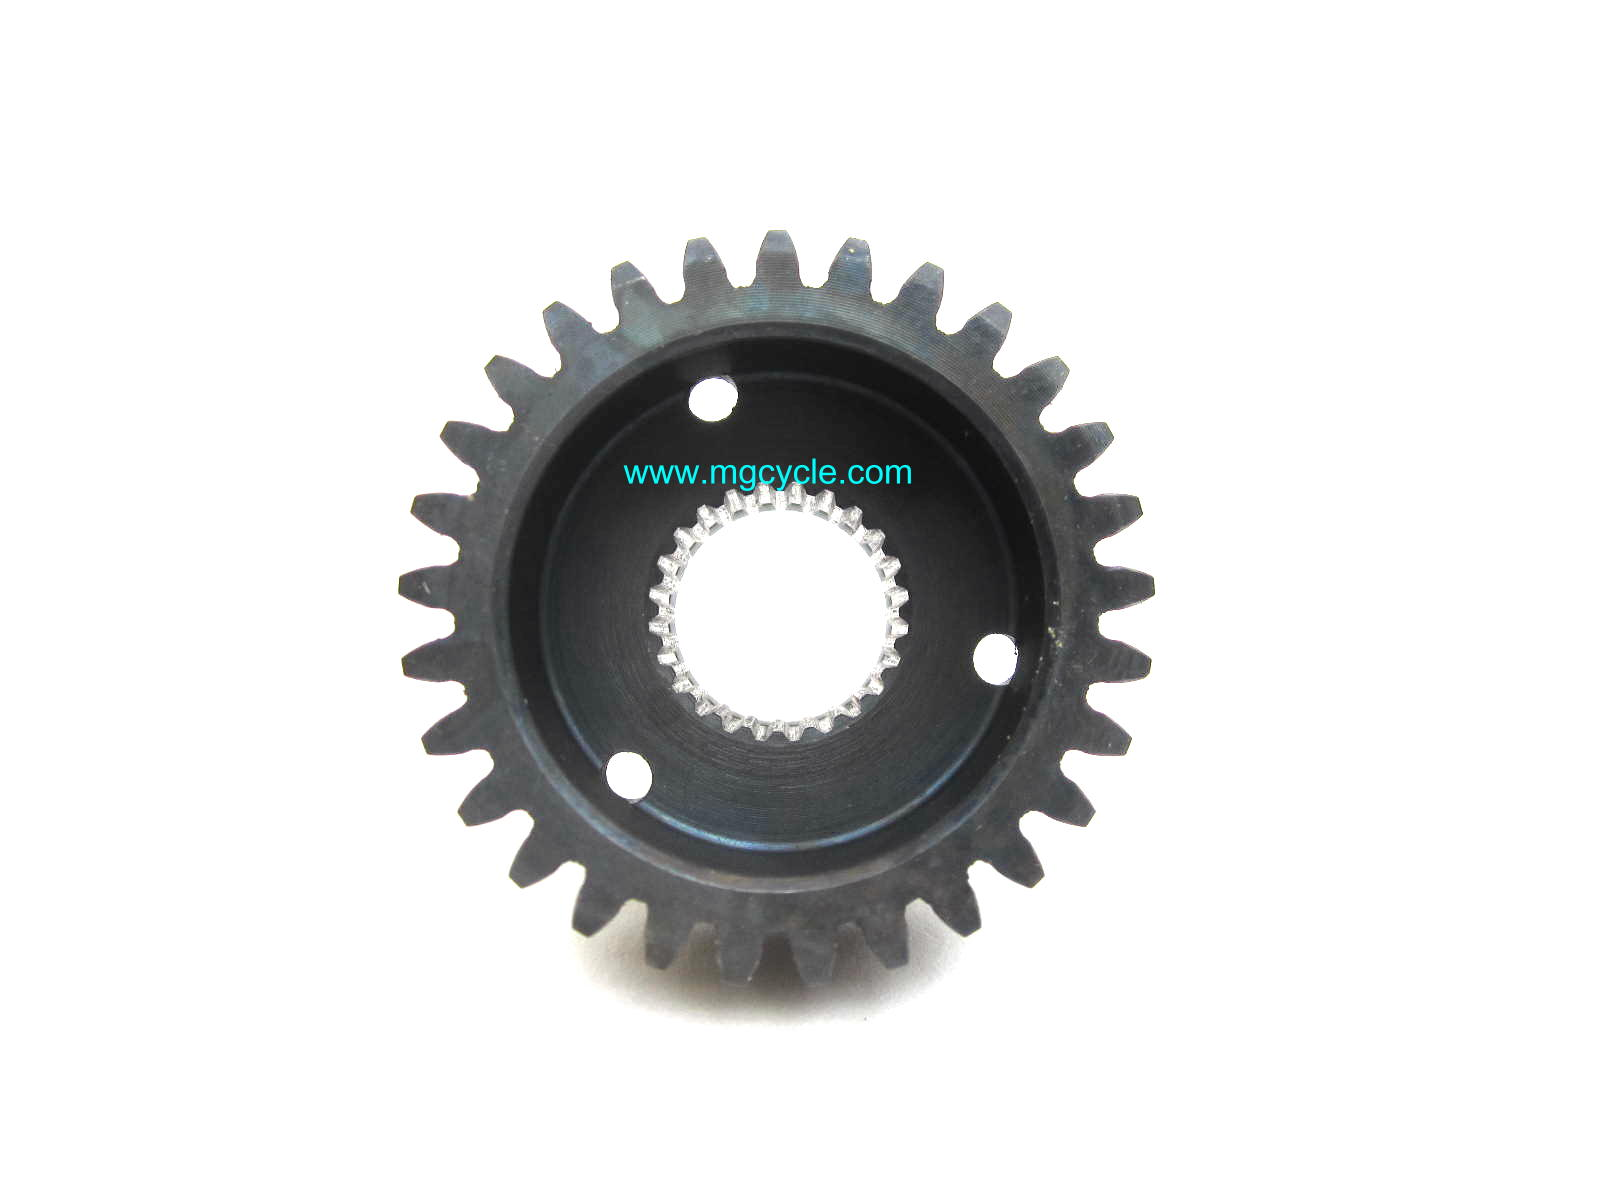 clutch hub deep 4mm spline, as used since 1989 big twin 5 speeds